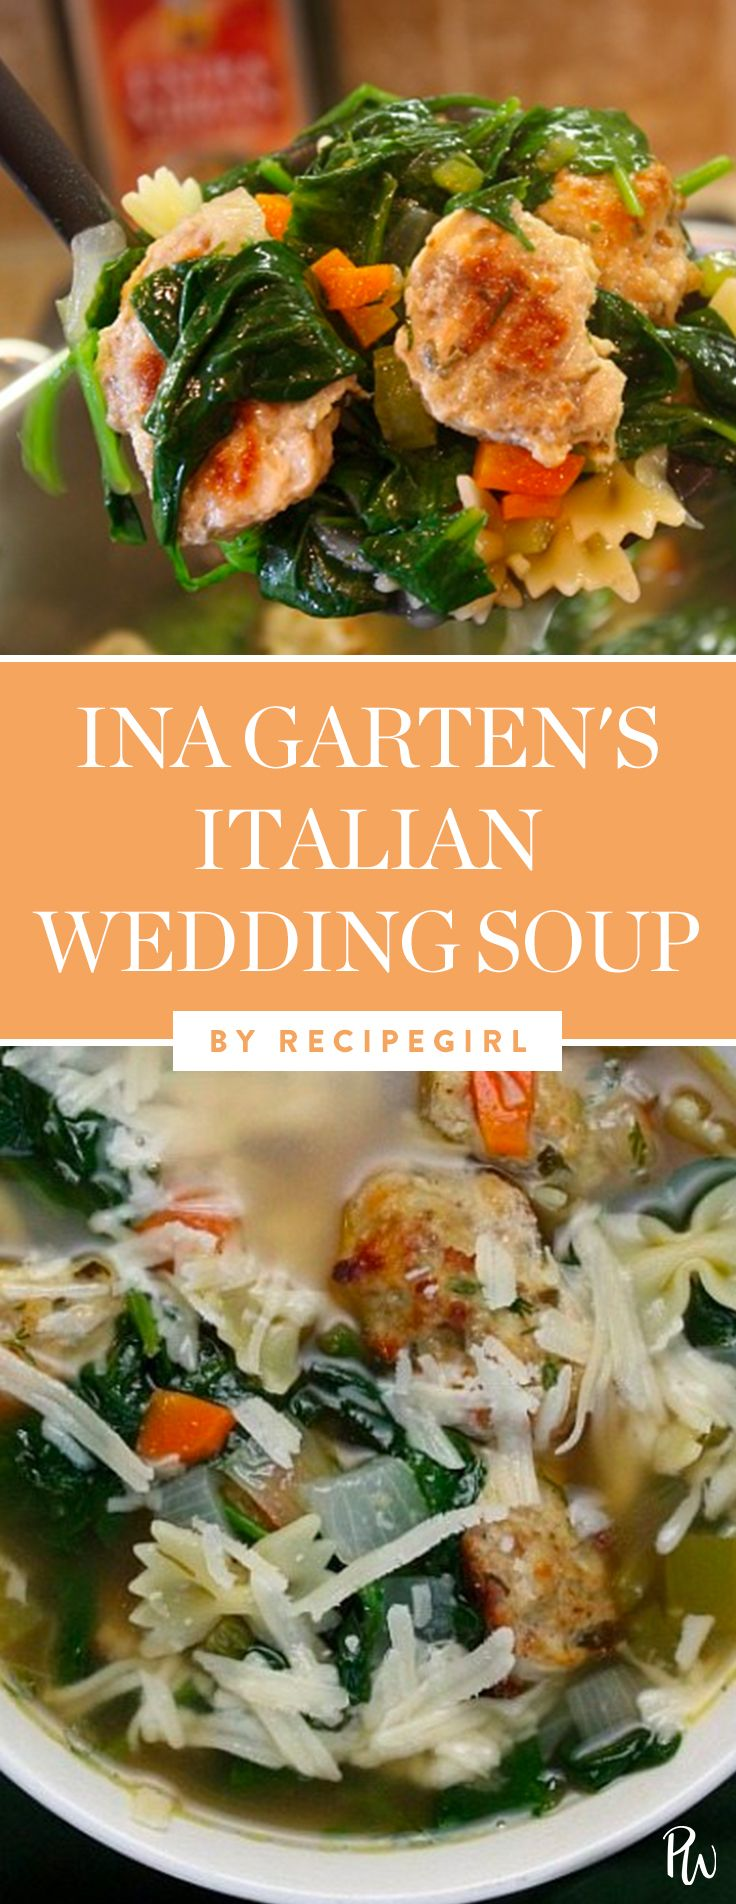 Get this amazing Italian wedding soup recipe by RecipeGirl, and more of the best Ina Garten lunch recipes your friends and family will love here. #inagarten #inagartenrecipes #inagartenlunch #lunchpartyrecipes #lunchrecipes #italianweddingsoup